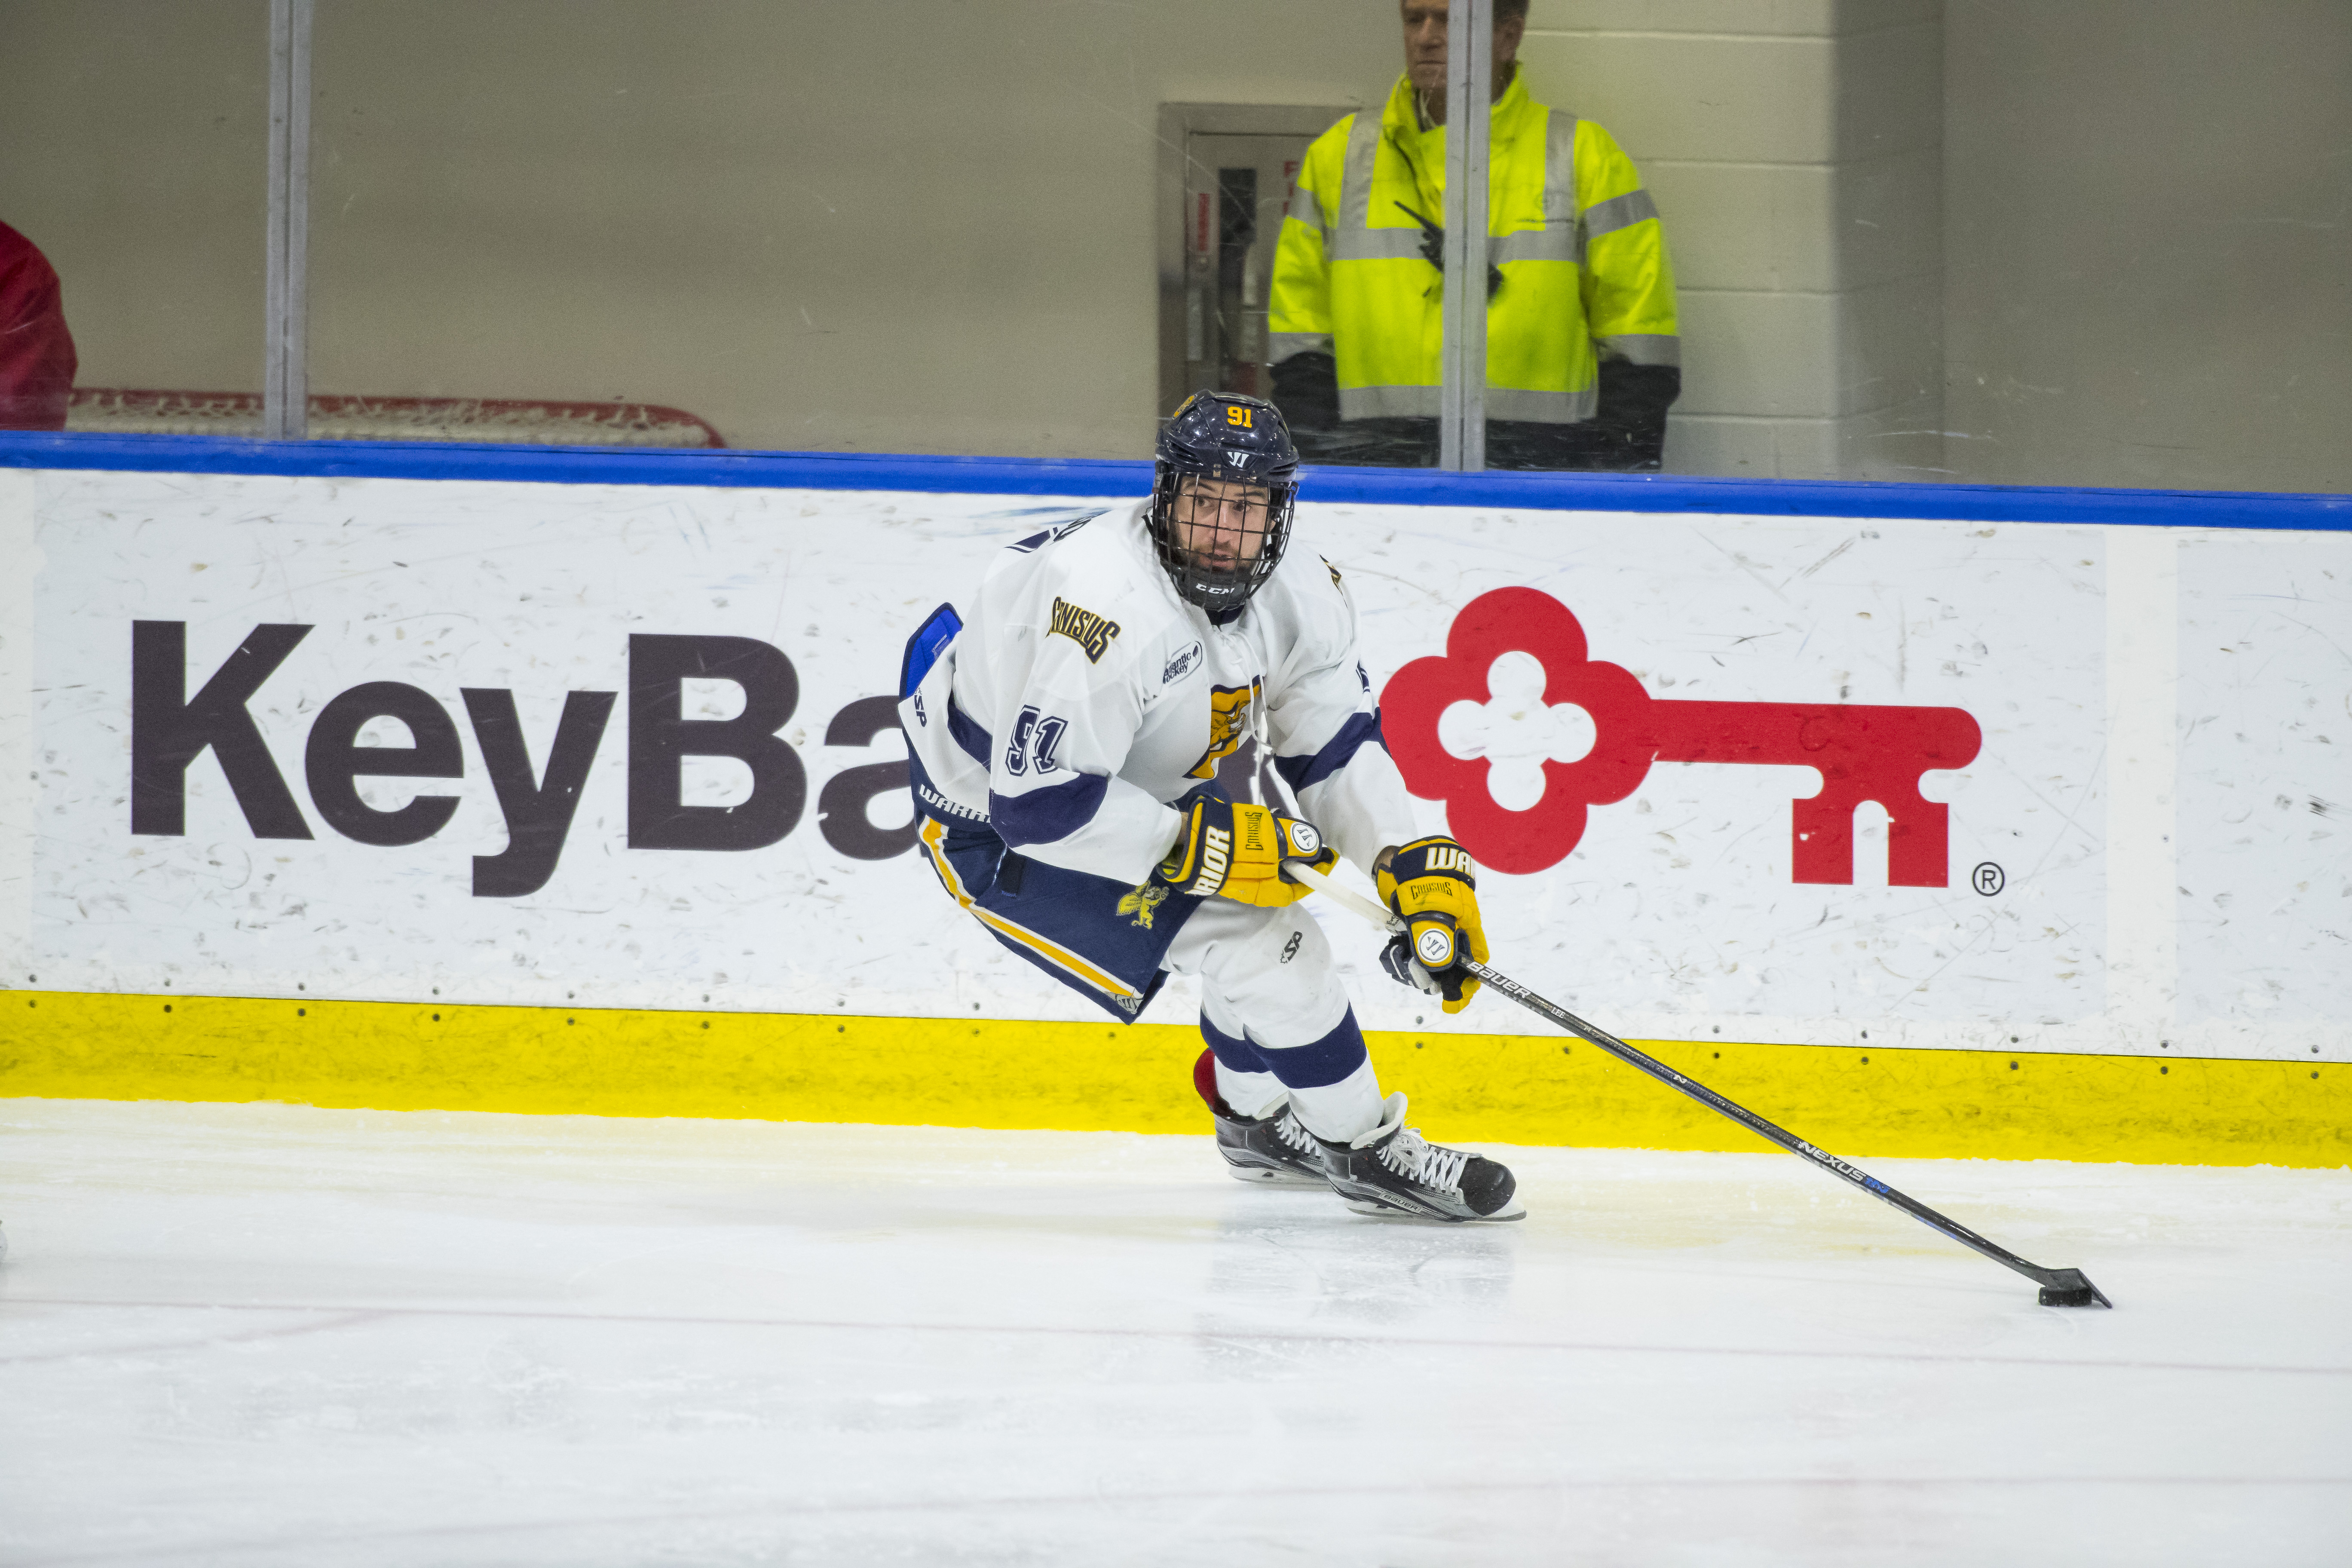 Nick Hutchison scored what proved to be the game-winner for Canisius. (Canisius Athletic Communications)